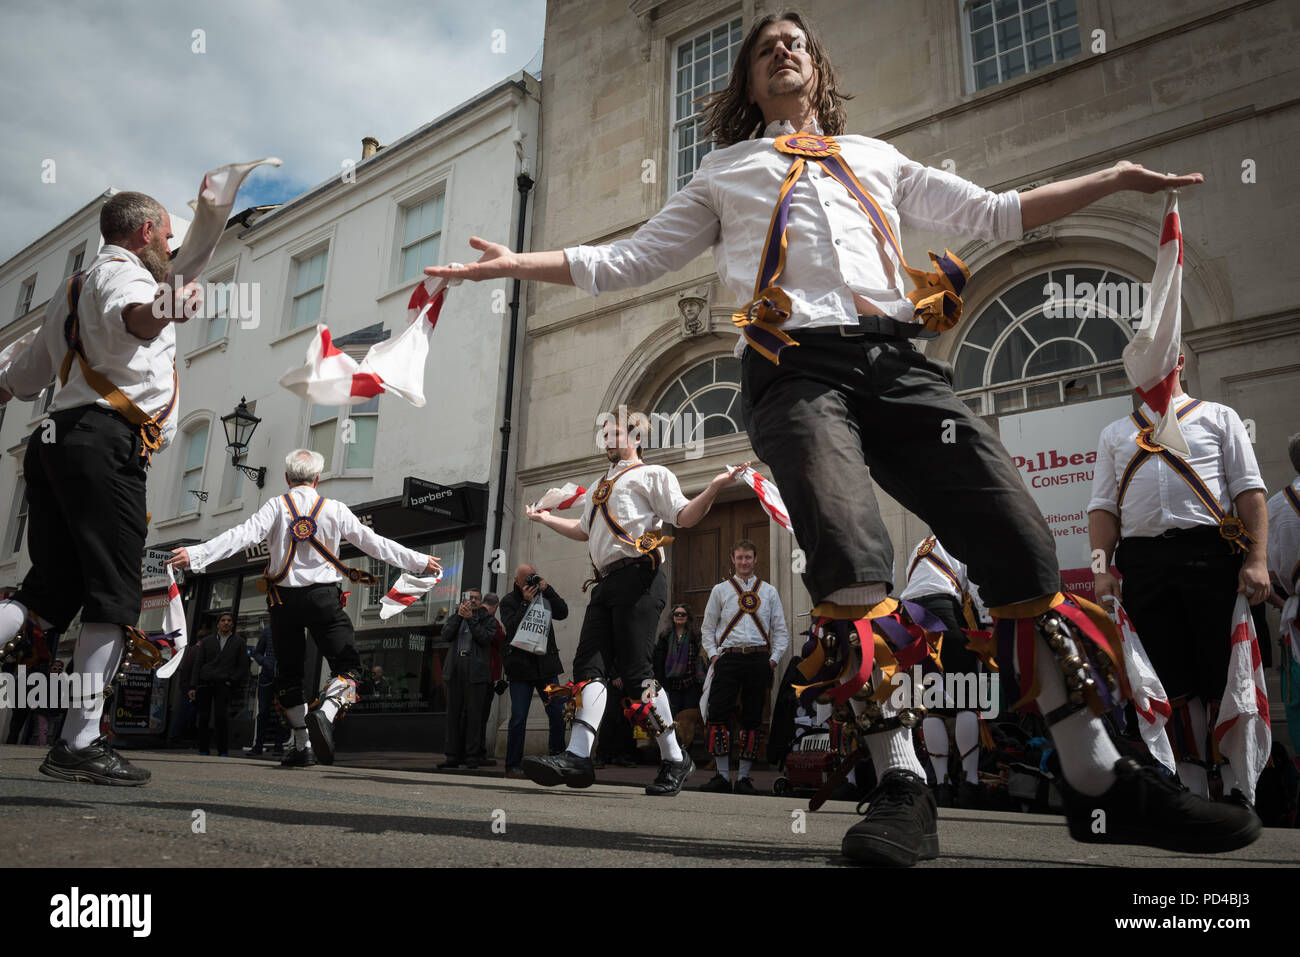 The Lanes, Brighton, UK. 23rd April 2016. The Brighton Morris Men together with the Cuckoo's Nest Morris side celebrate St George's Day by performing  - Stock Image